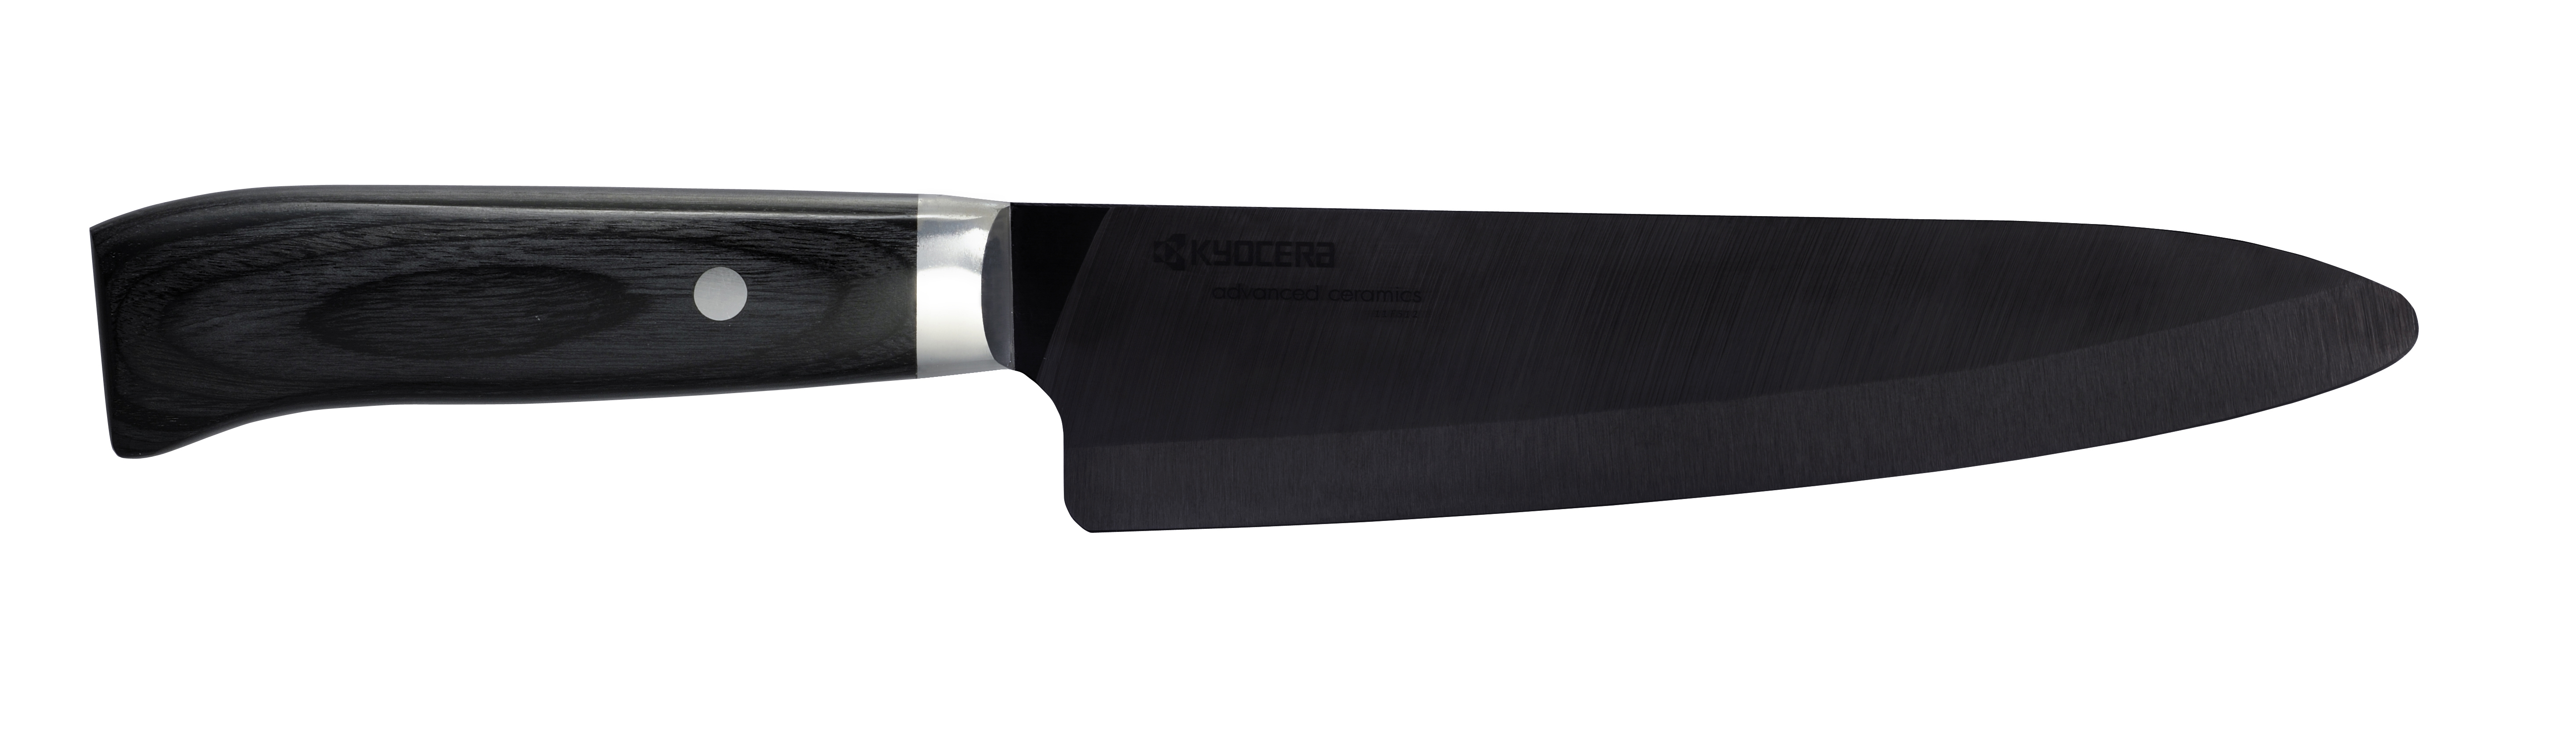 Kyocera Japan Serie Black Chef S Knife Kyocera Cutlery